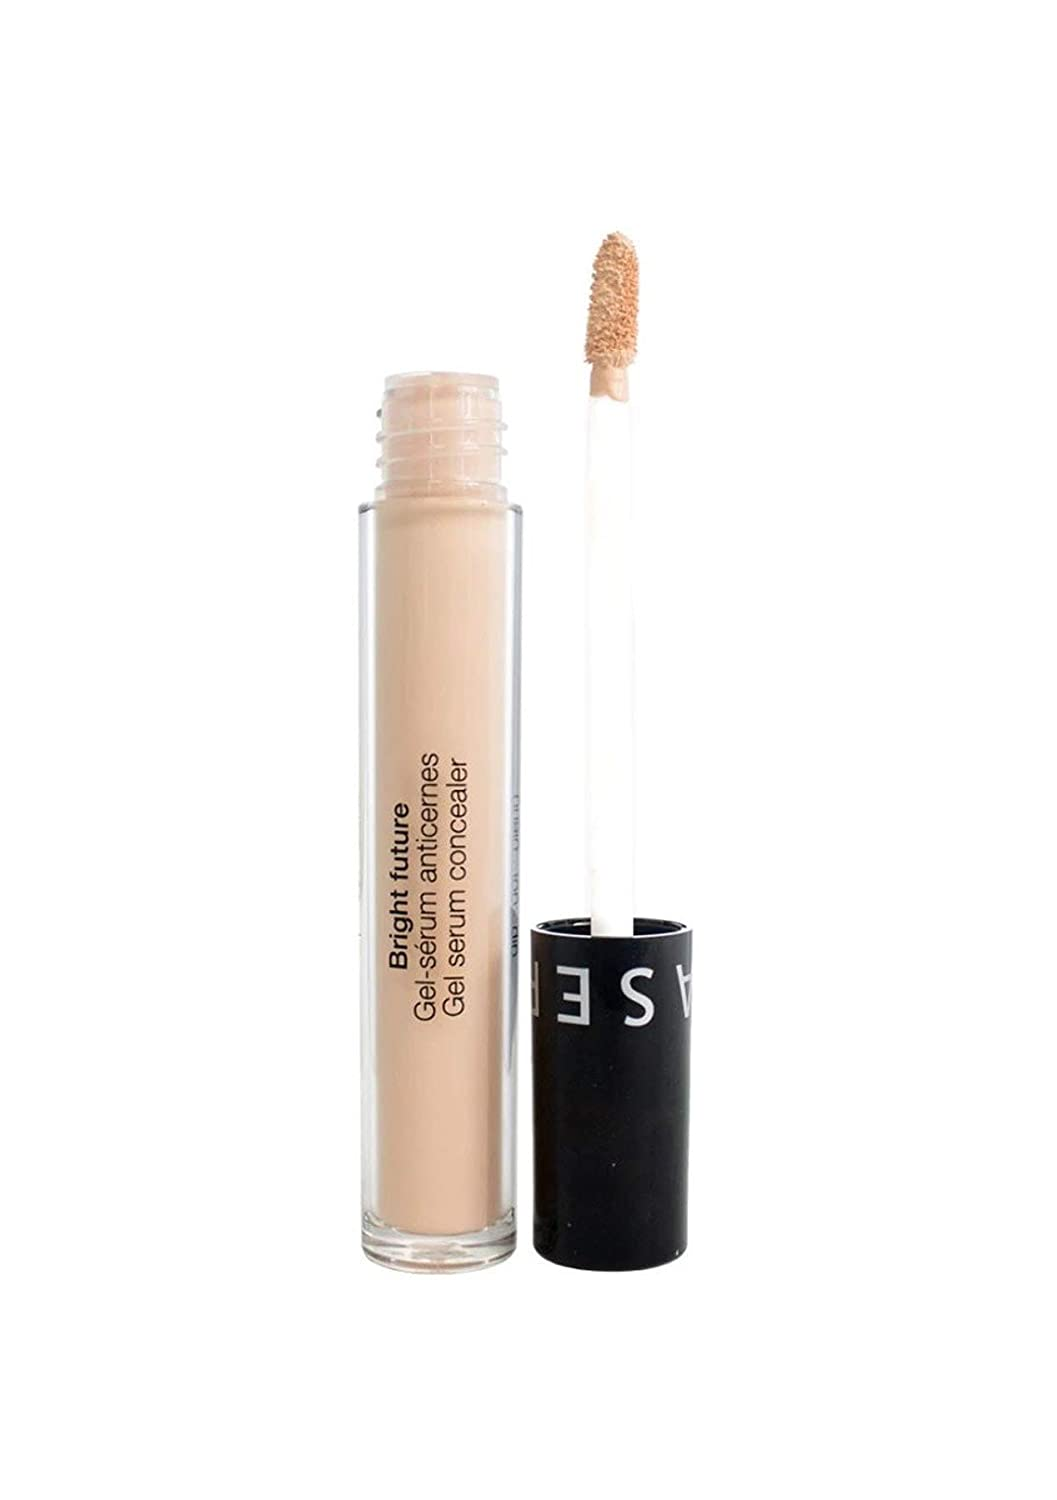 SEPHORA COLLECTION Bright Future Gel Serum Concealer 07.5 Biscotti 0.13 oz